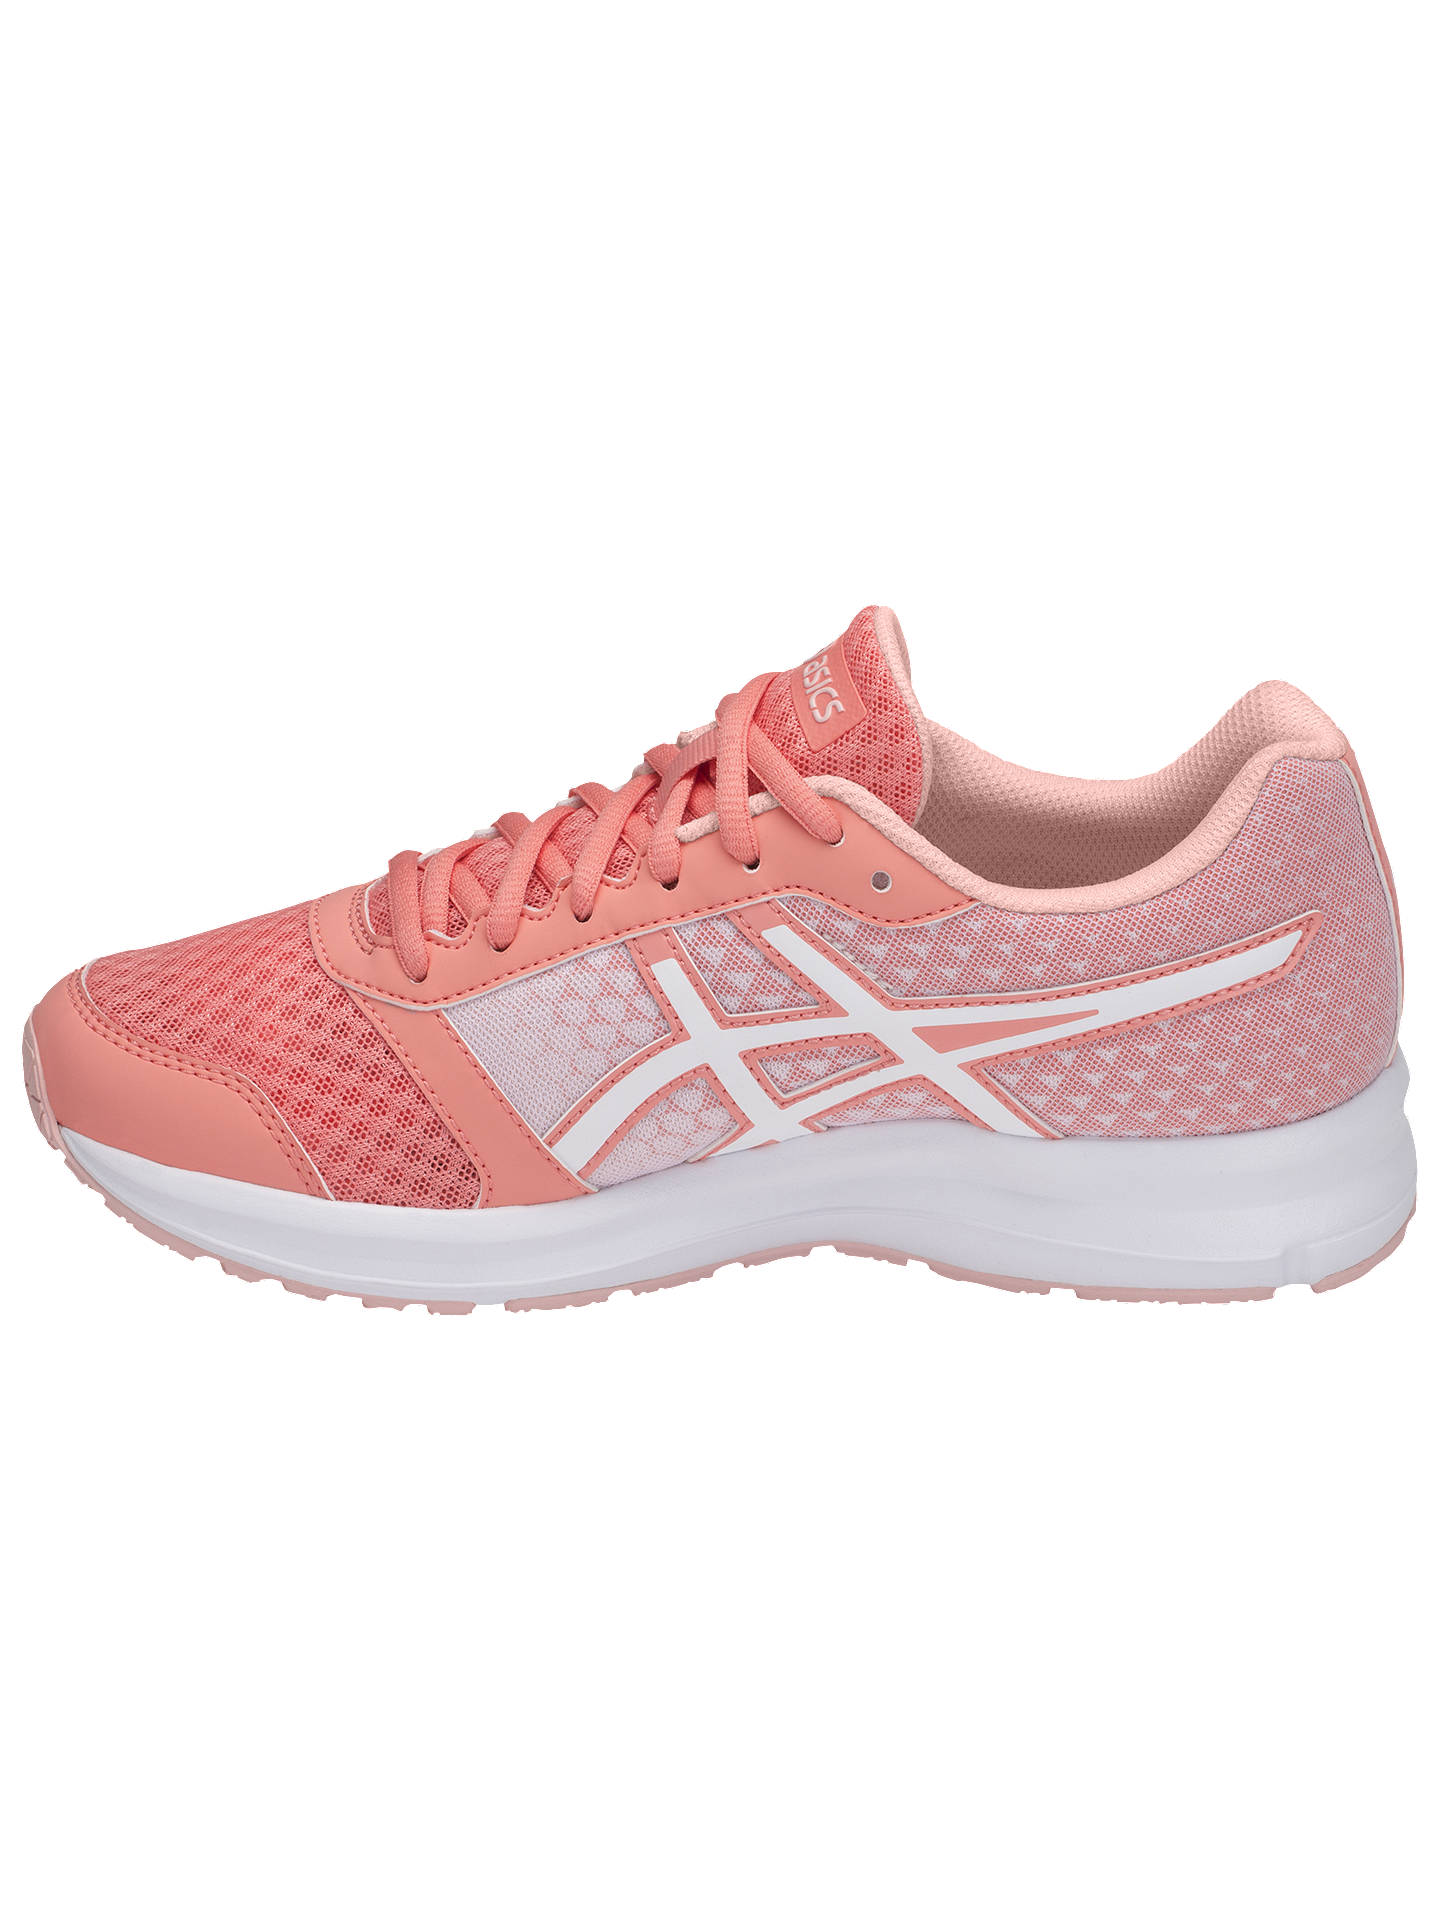 asics womens run patriot 9